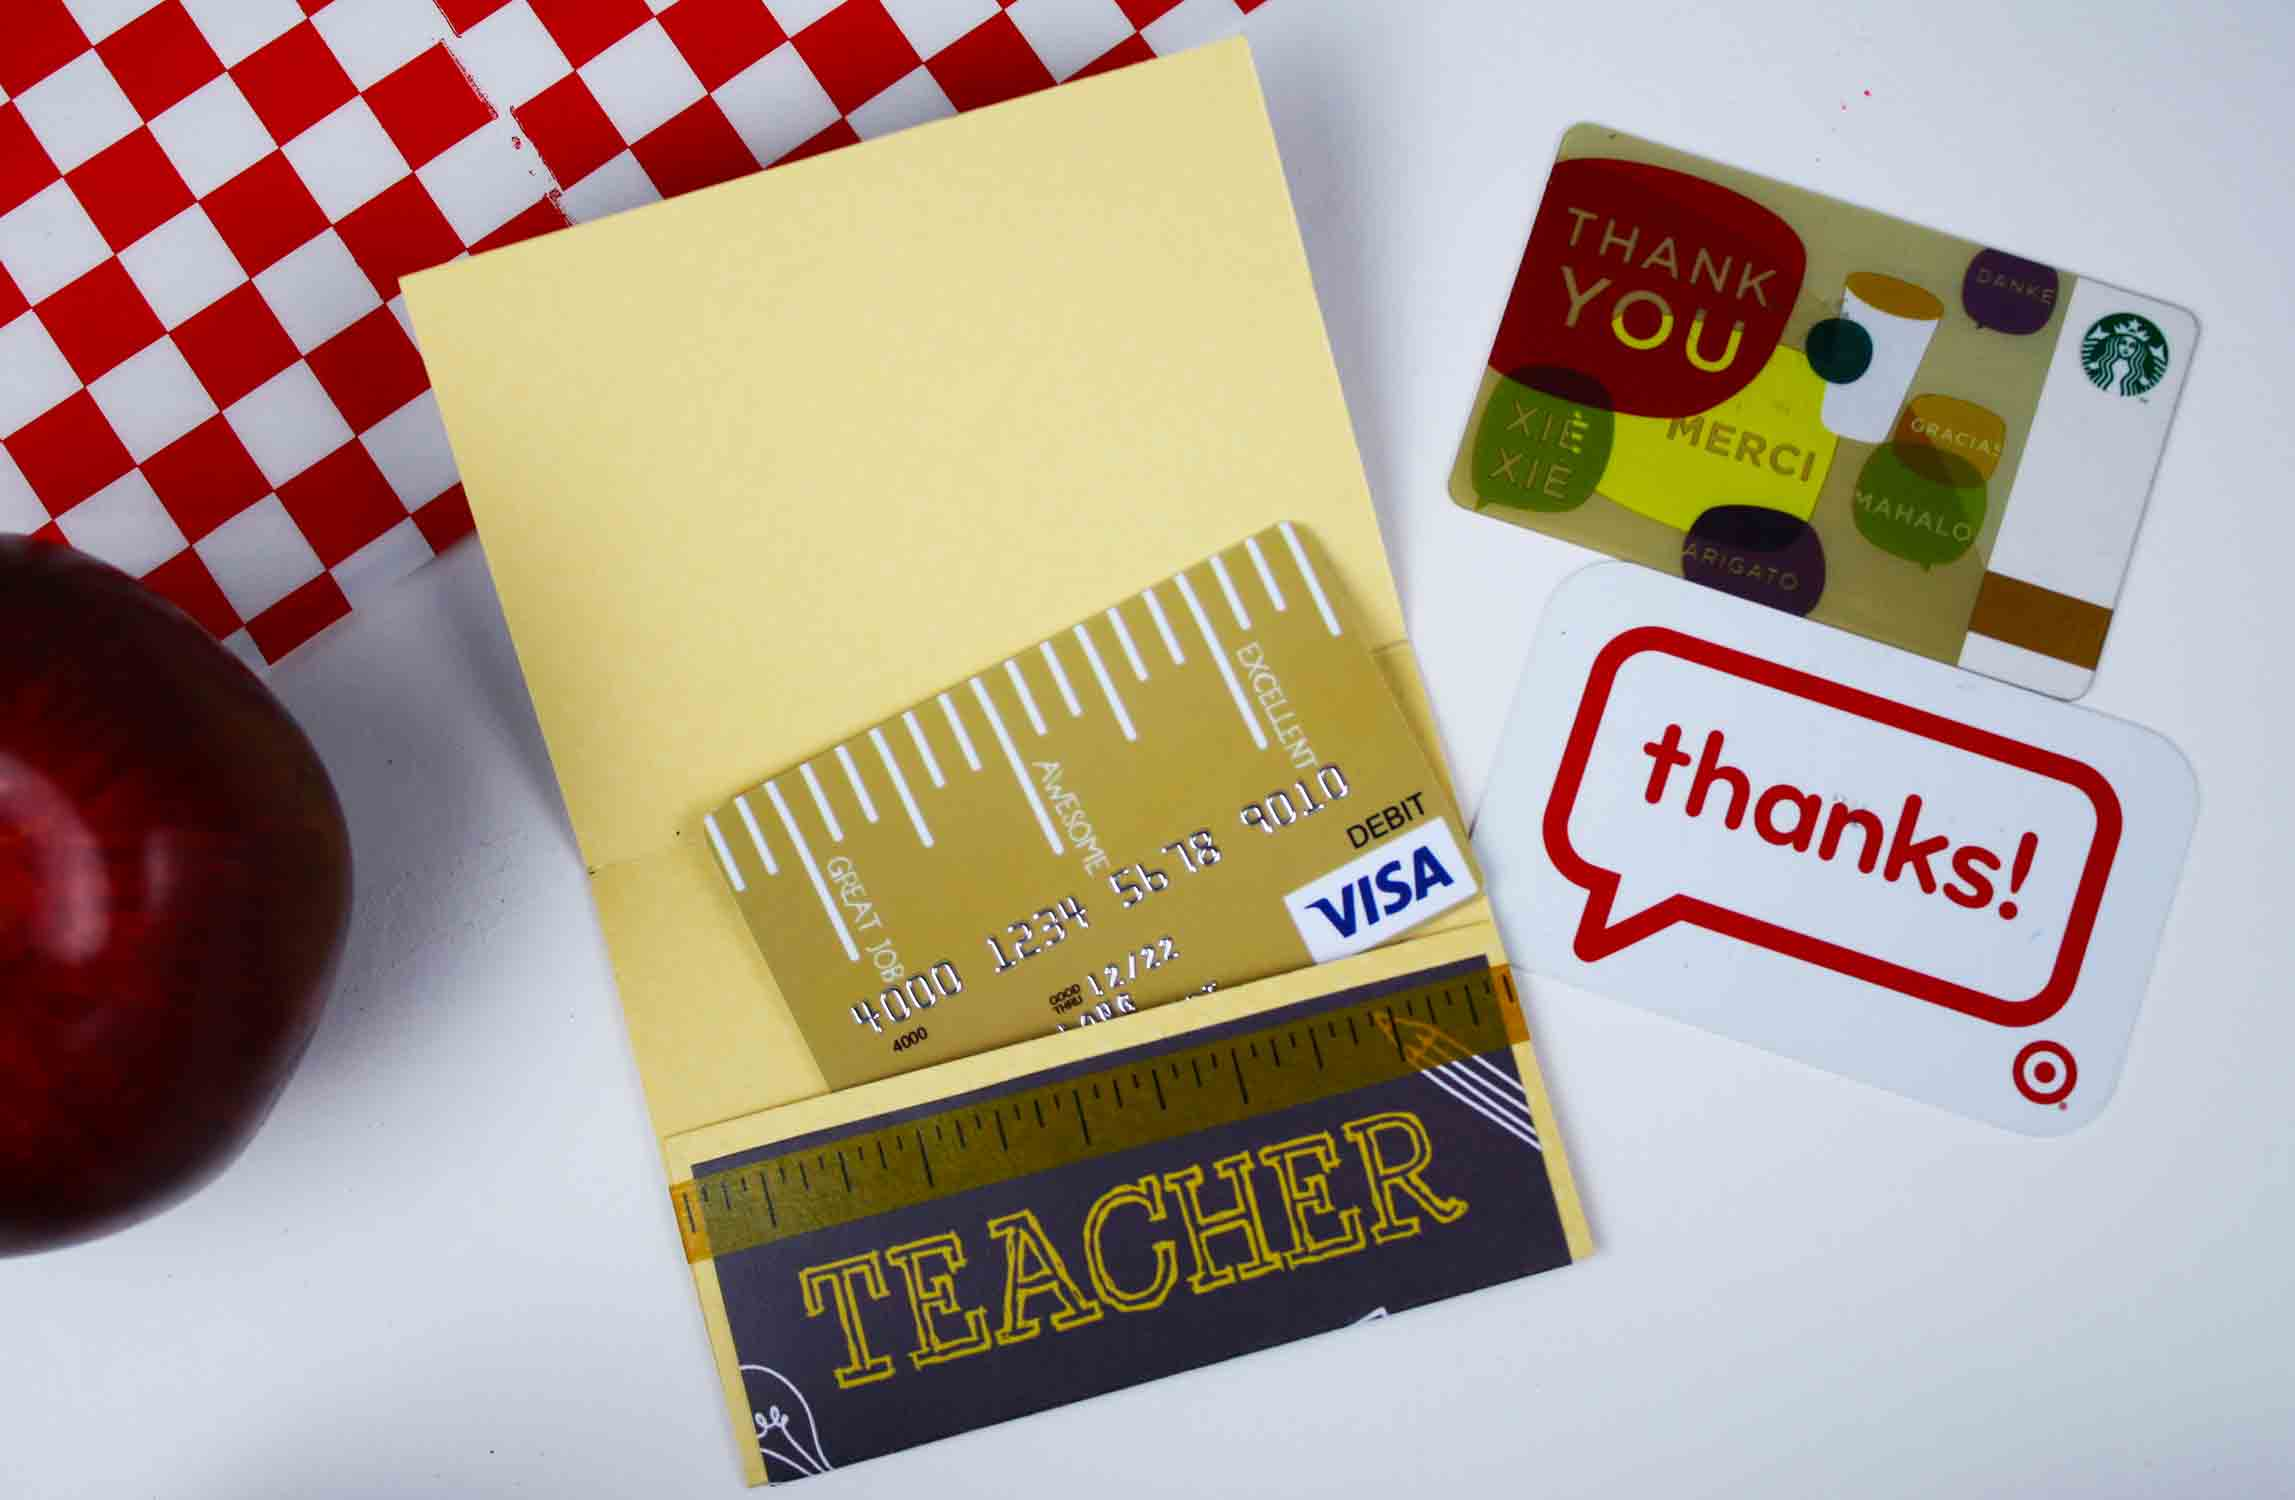 Put ruler gift card inside